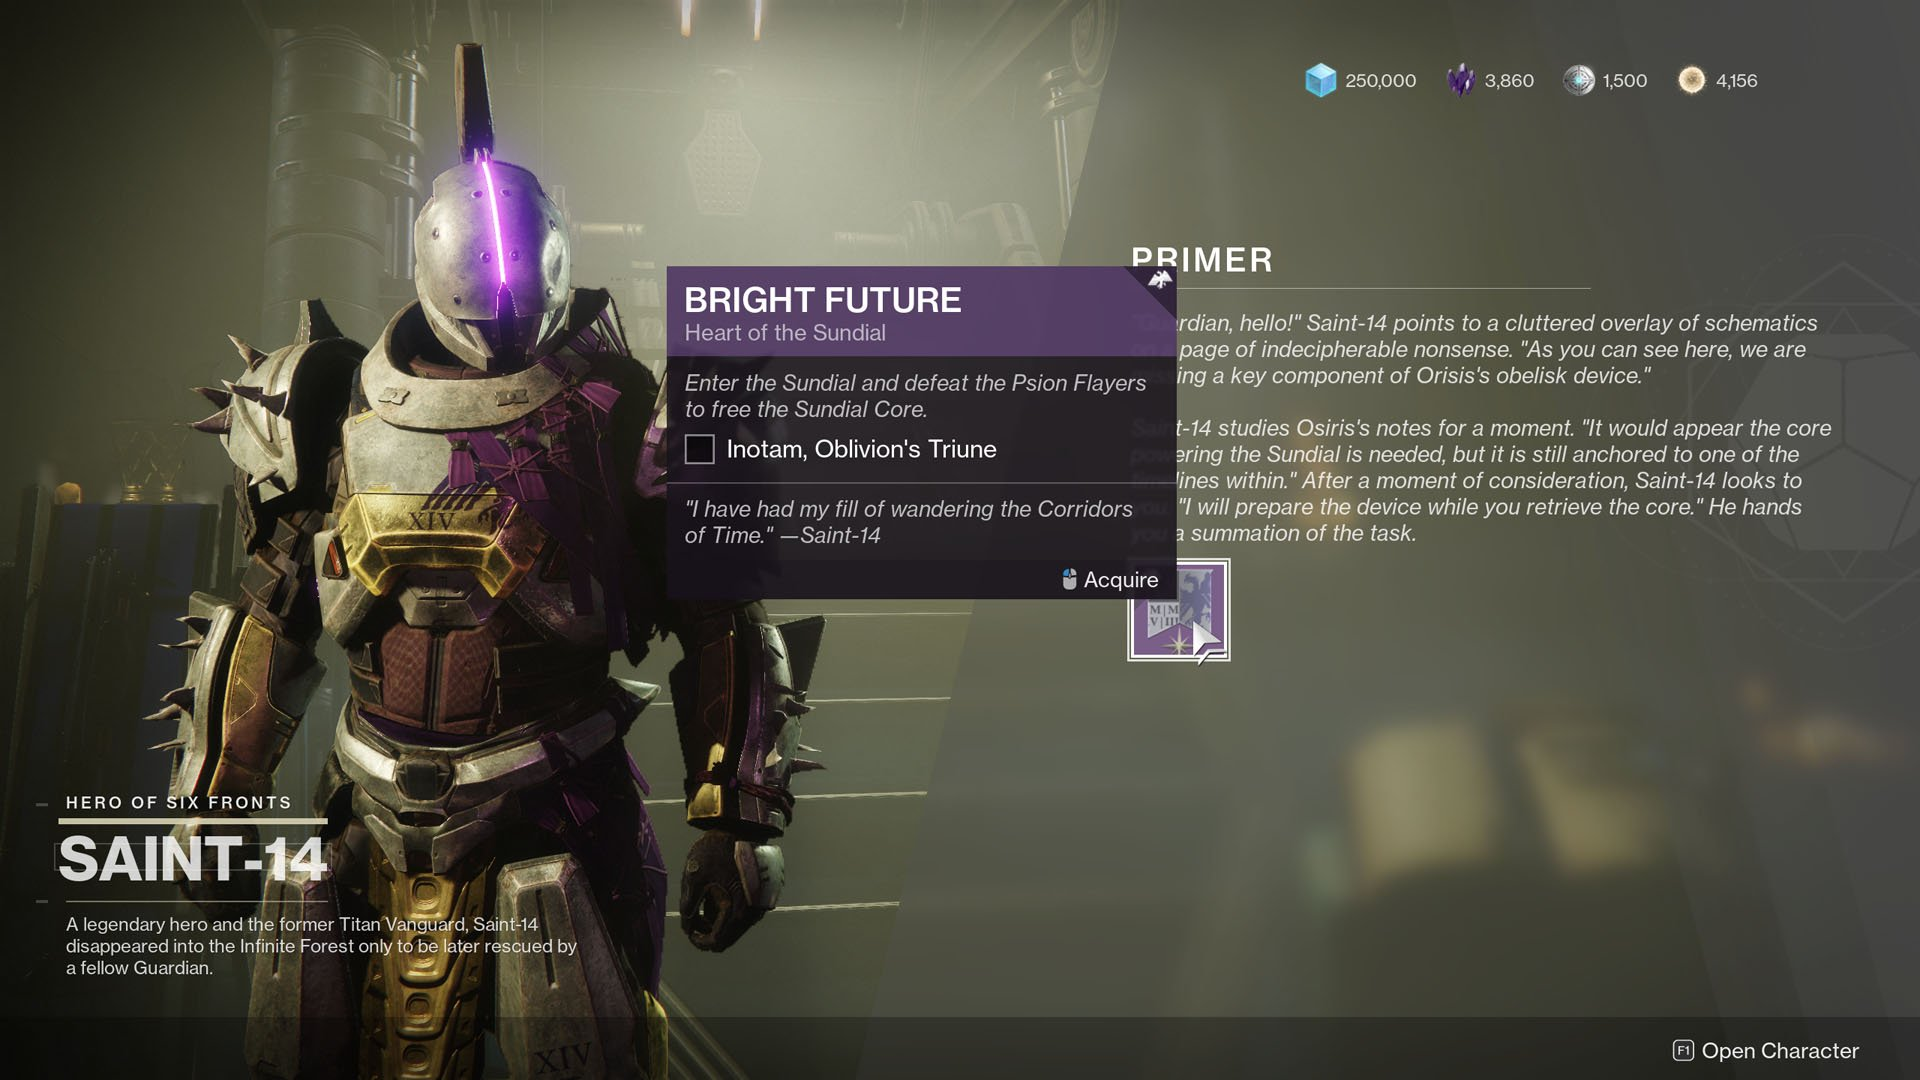 Destiny 2 Empyrean Foundation guide - Bright Future quest